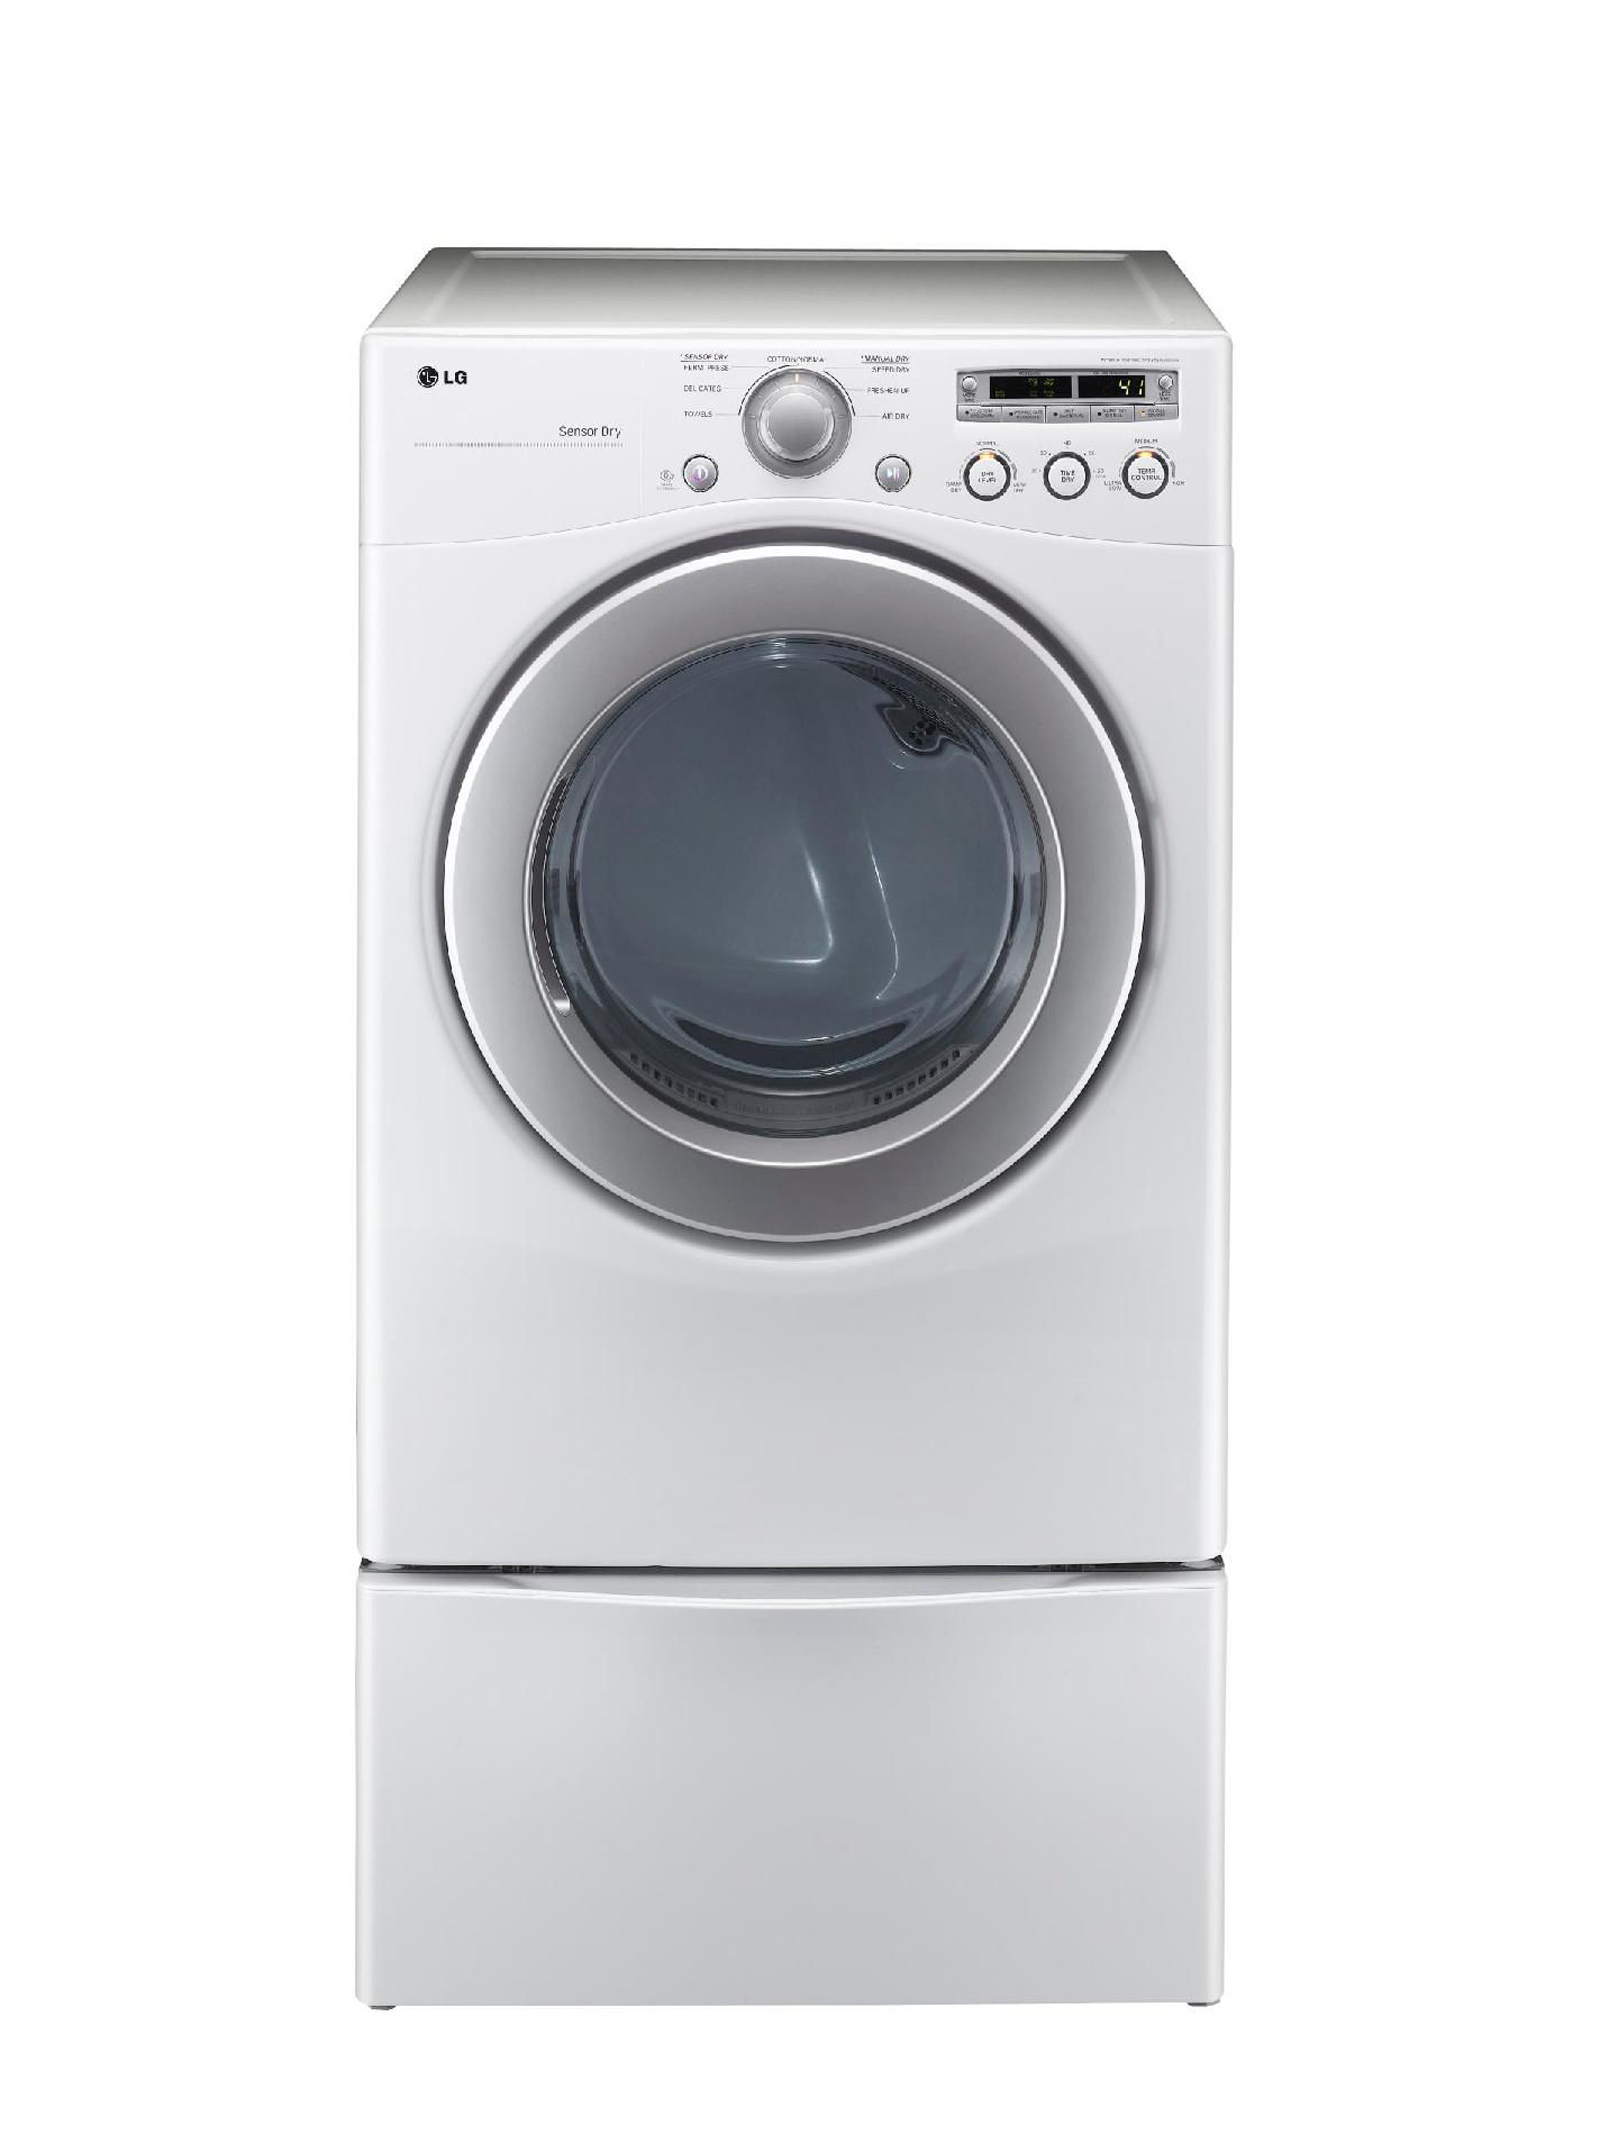 LG 7.1 cu. ft. Extra Large Capacity Gas Dryer with Sensor Dry - White